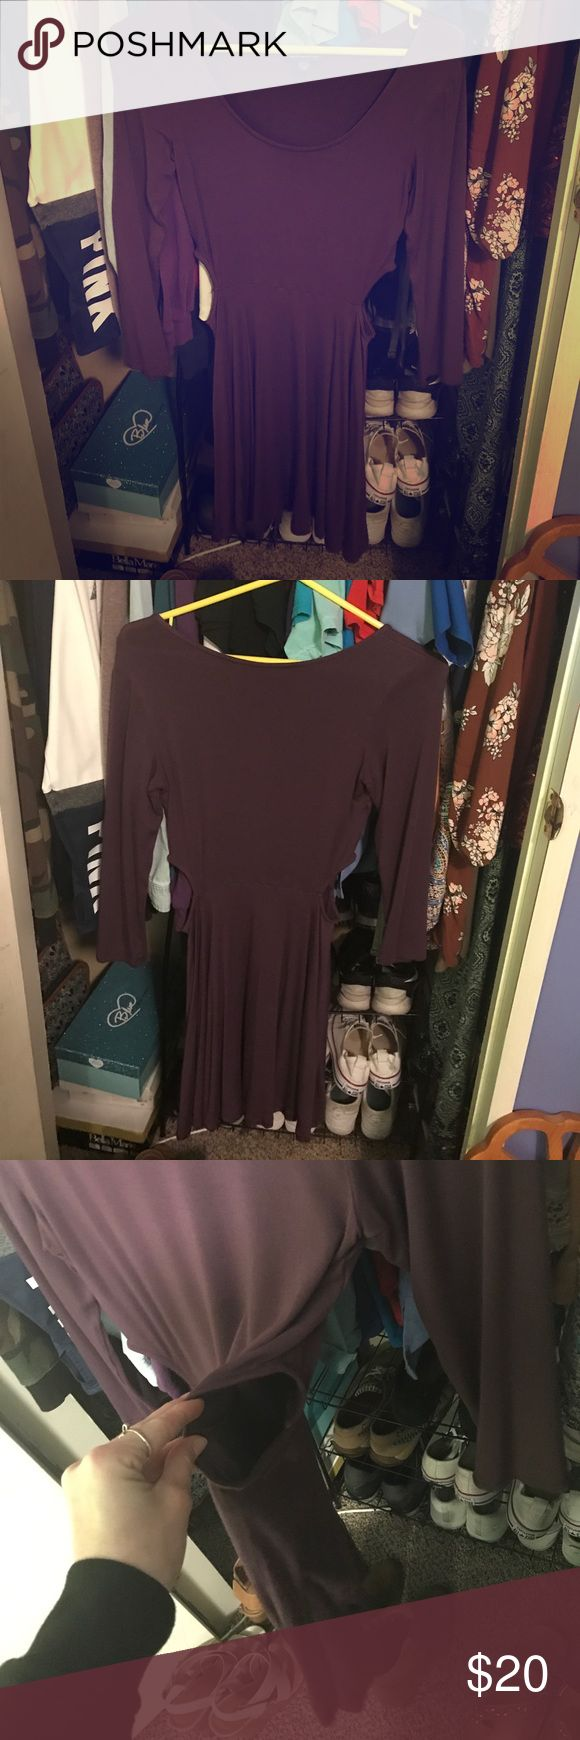 Mauve purple American Eagle long sleeve dress Long sleeved dress that is about mid thigh length. Has two keyhole cut outs on both sides of the dress. Great for layering. Worn about 3 times. Still in great condition. American Eagle Outfitters Dresses Long Sleeve